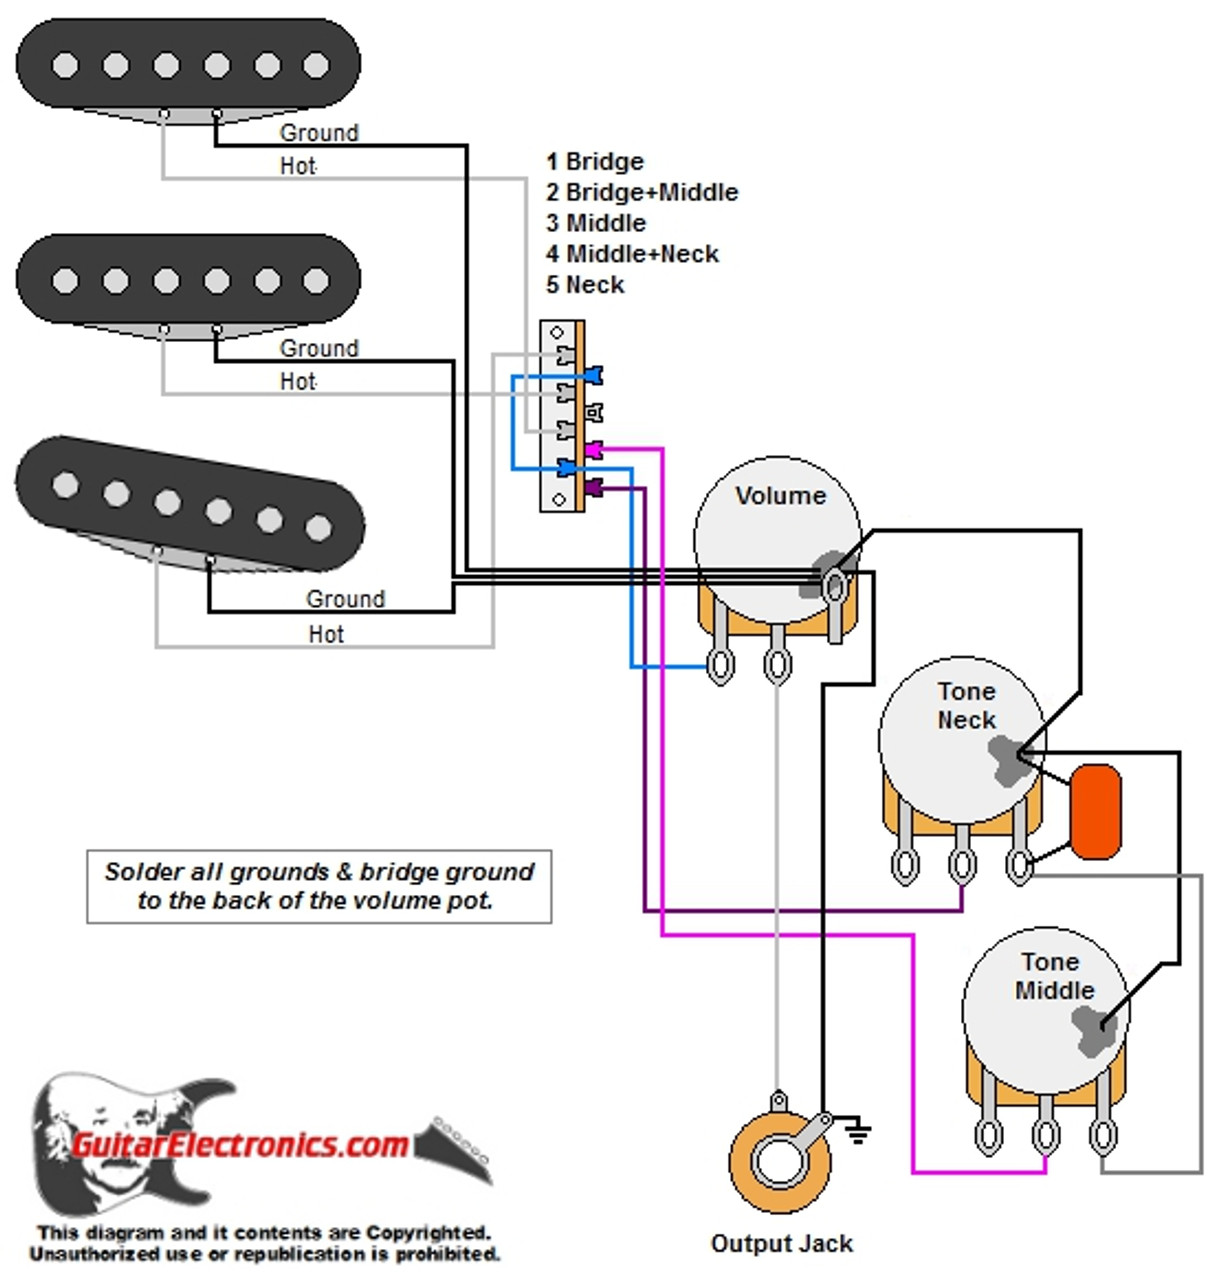 strat style guitar wiring diagram  guitar electronics